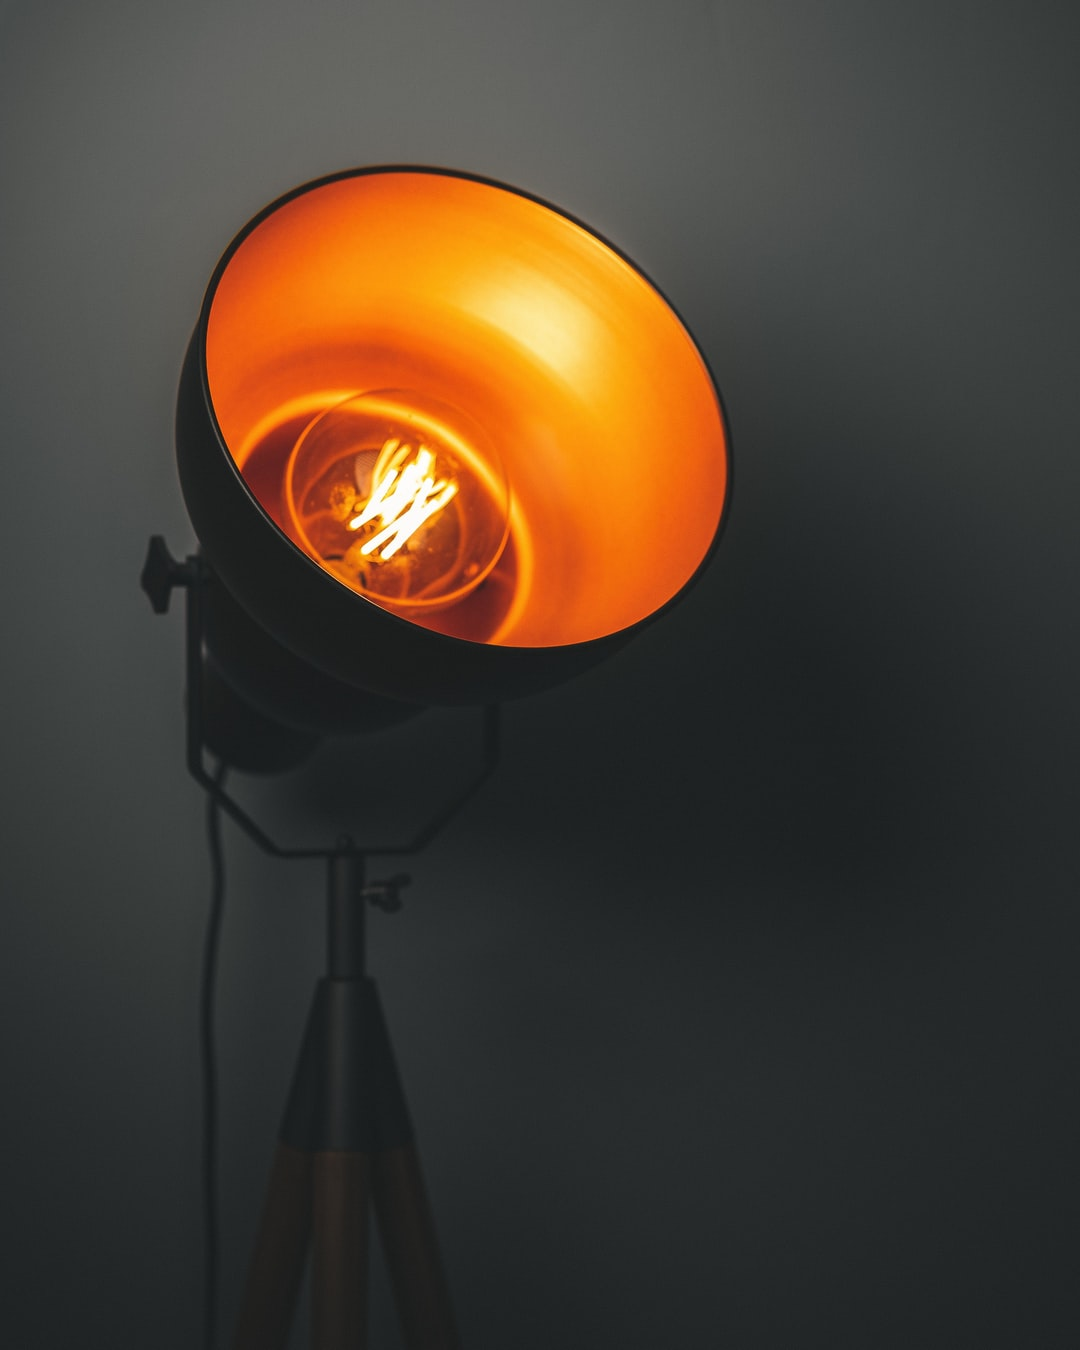 An industrial style lamp against a grey background.